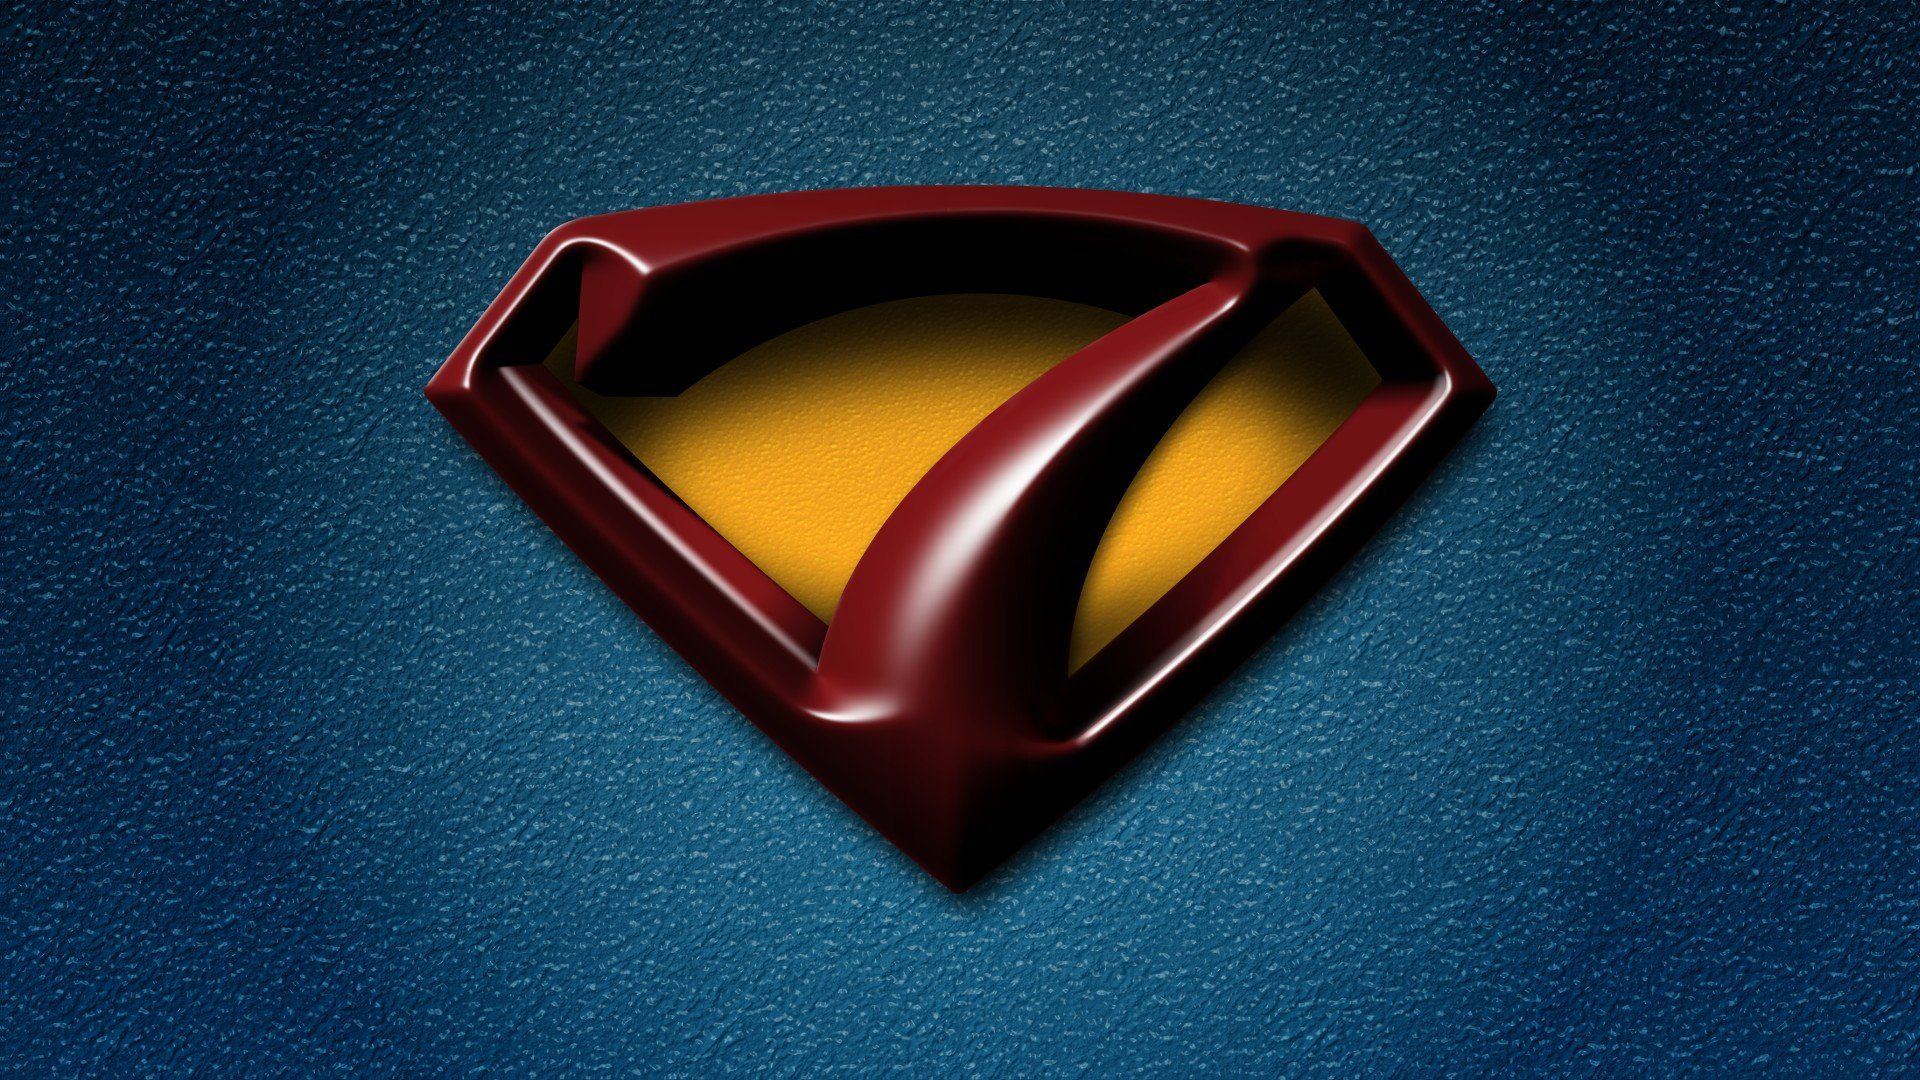 Ideas about superman logo wallpaper on pinterest superman 19201080 ideas about superman logo wallpaper on pinterest superman 19201080 superman logo wallpaper 53 voltagebd Gallery